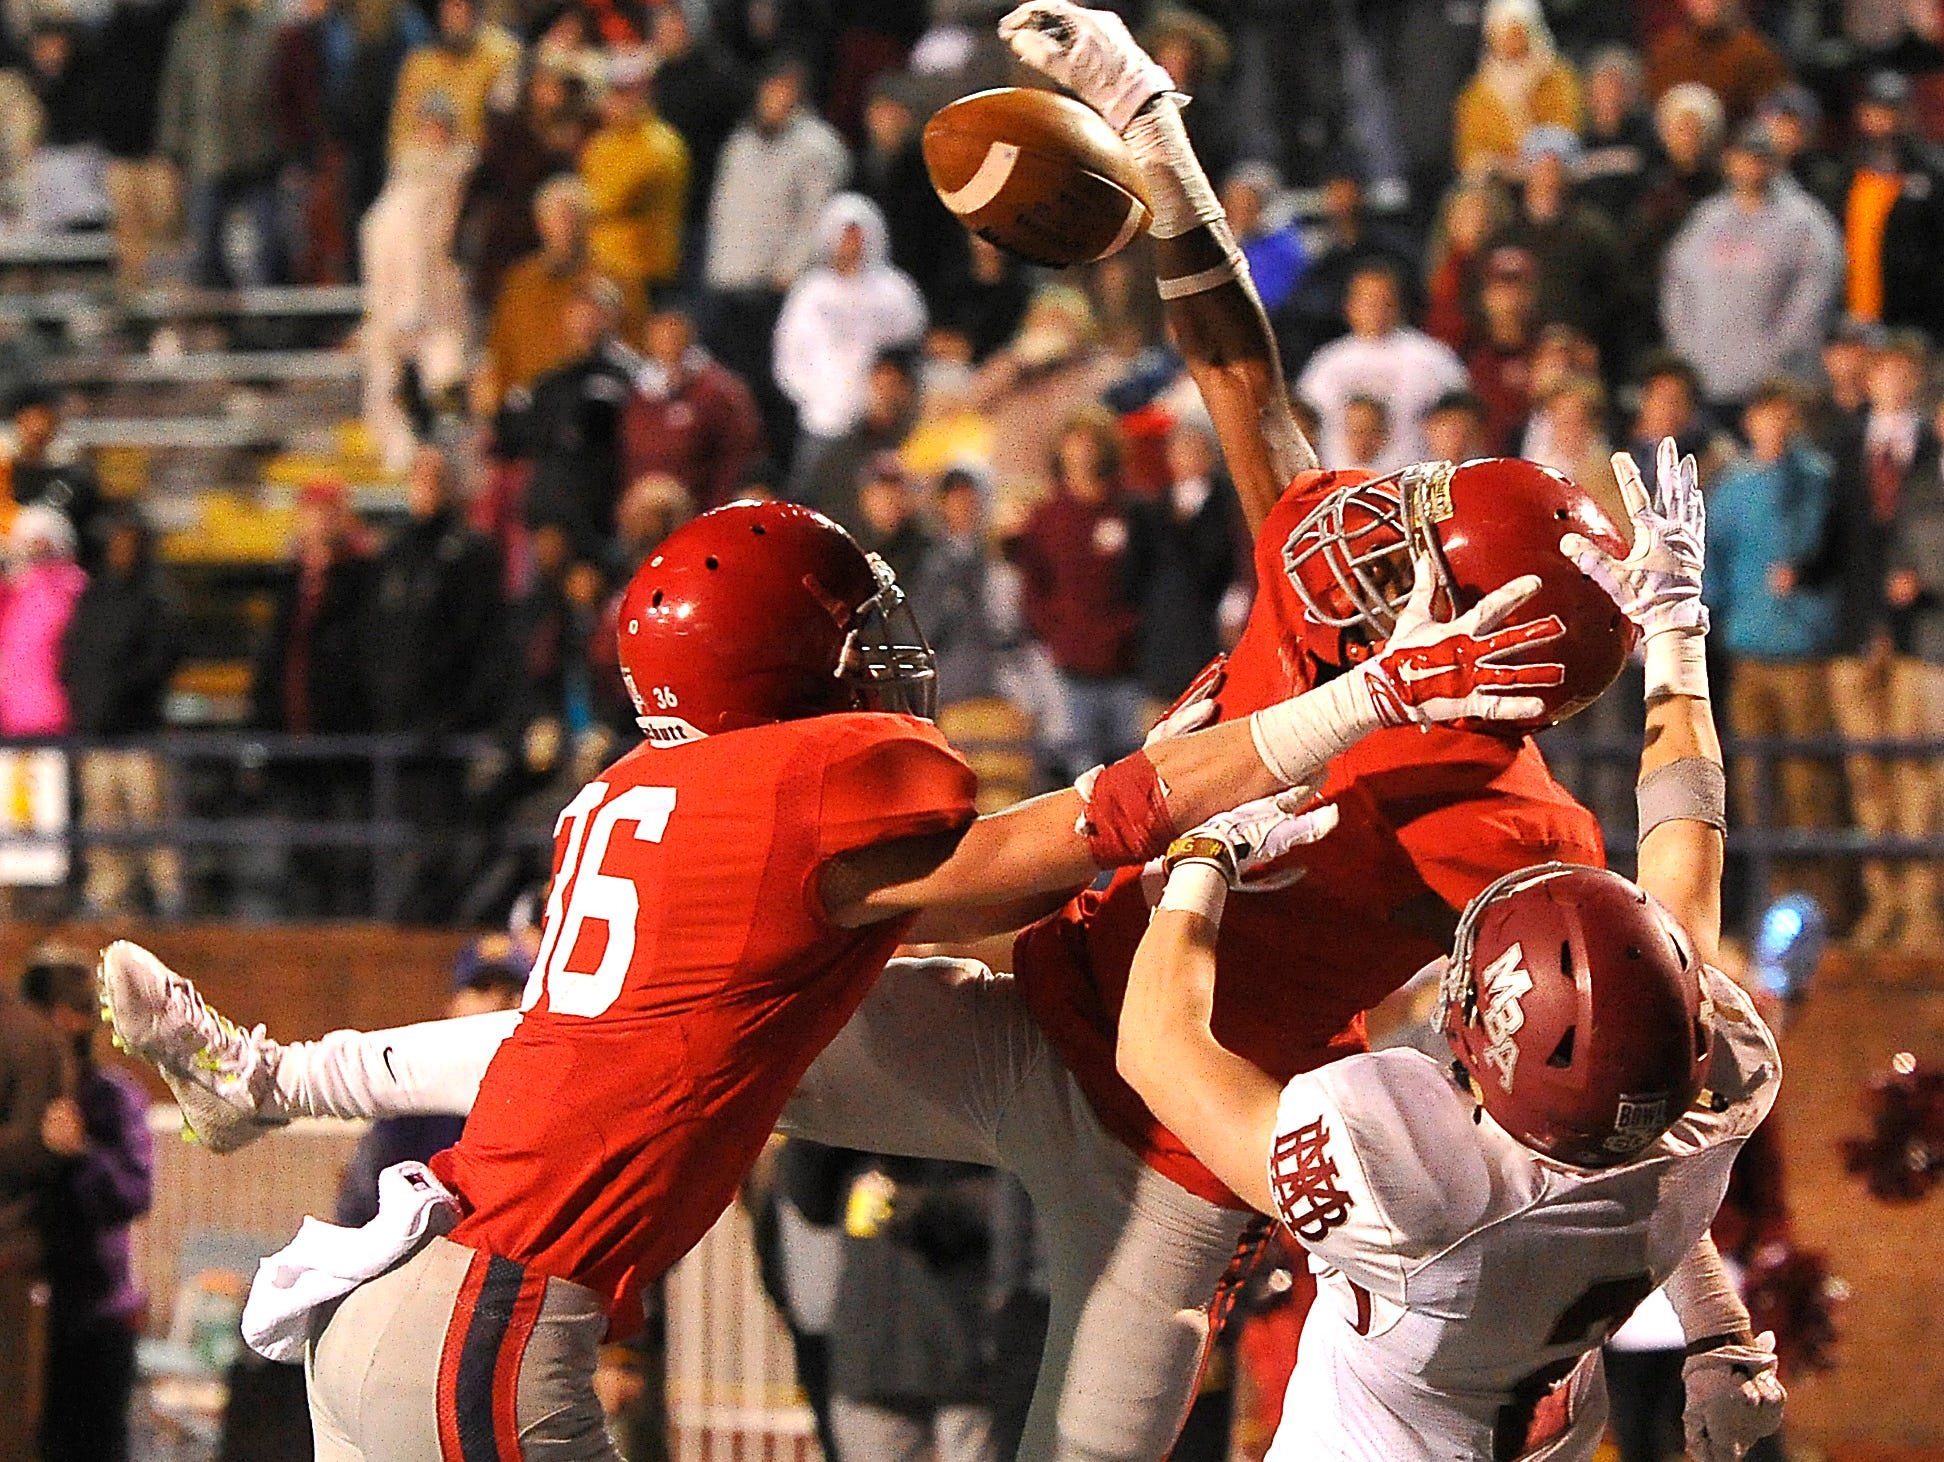 Brentwood Academy's Coutrell Plair knocks down a pass intended for Montgomery Bell Academy's Montgomery Owen on the last play in regulation to send the BlueCross Bowl DII-AA state title game into overtime on Dec. 3, 2015, in Cookeville.